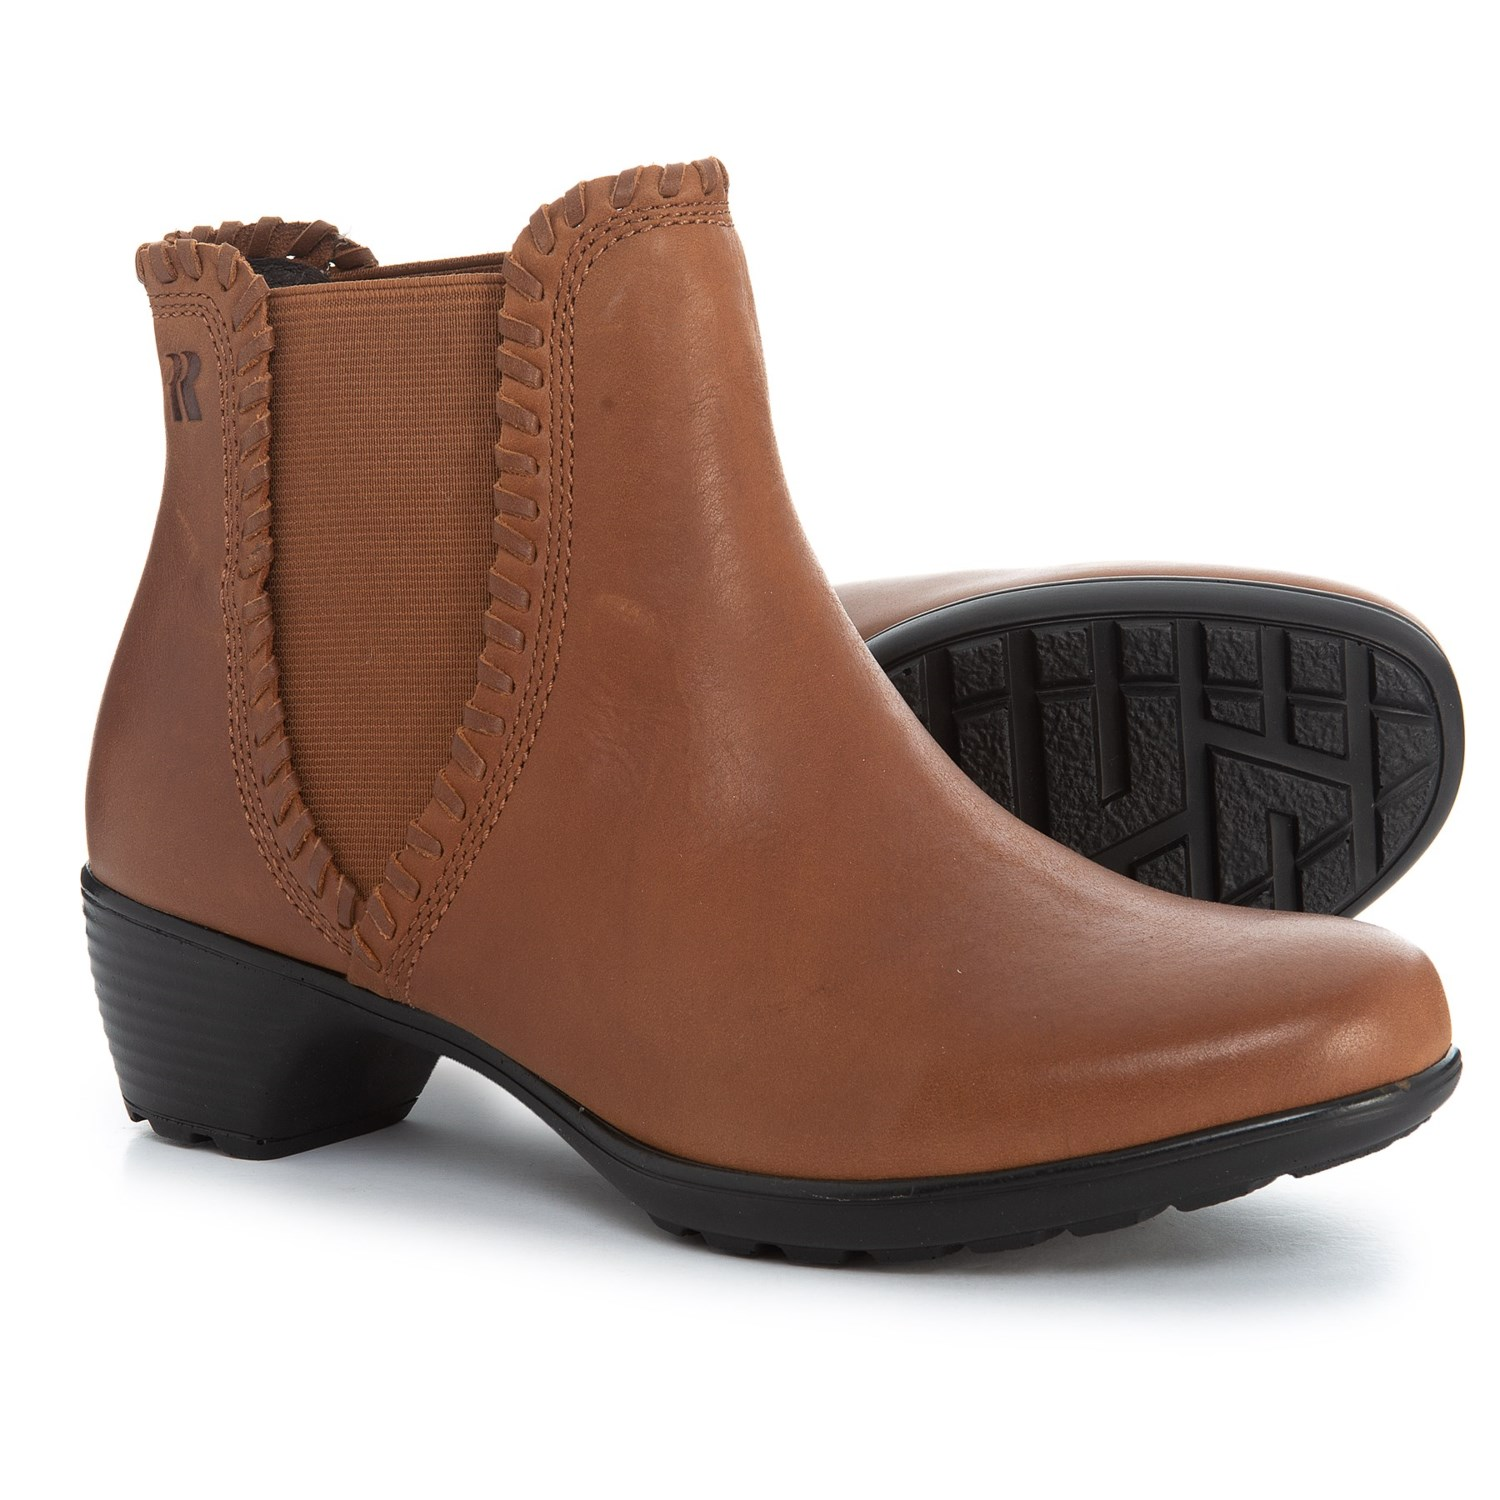 Romika Banja 16 Ankle Boots- Leather (For Women) in Brandy Smooth 224e806a5